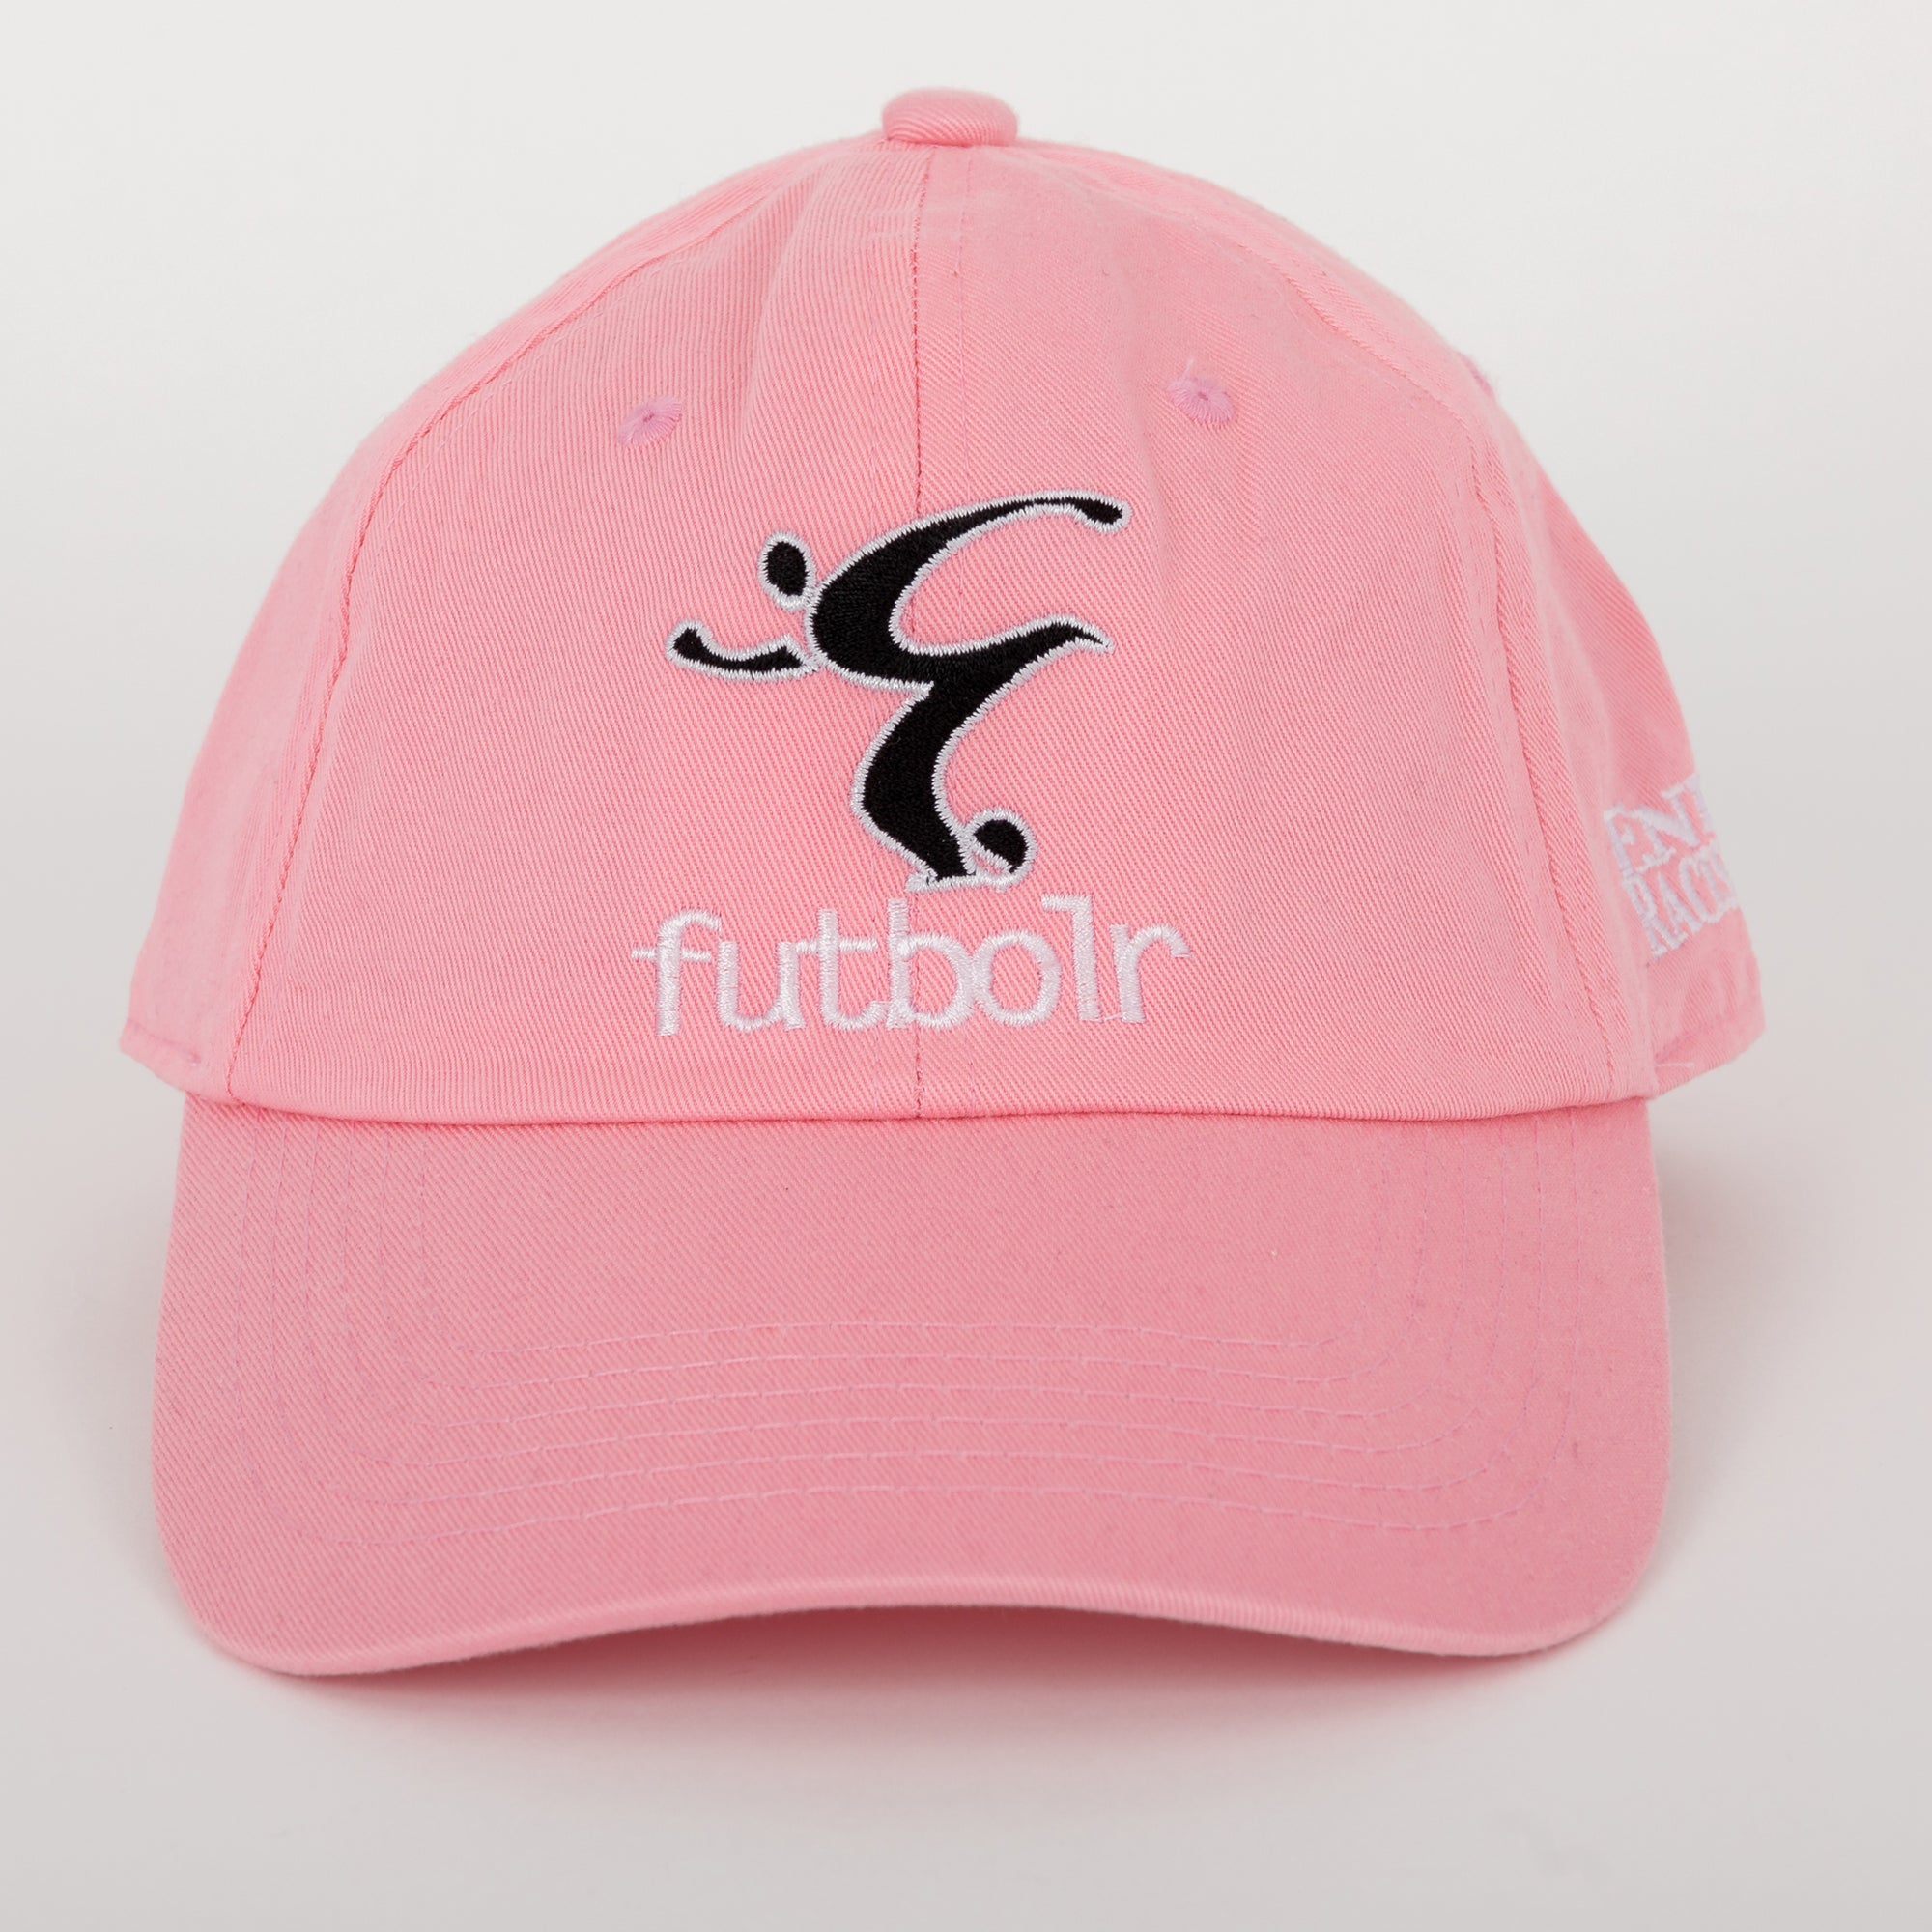 End Racism Futbolr Pink Dad Hat